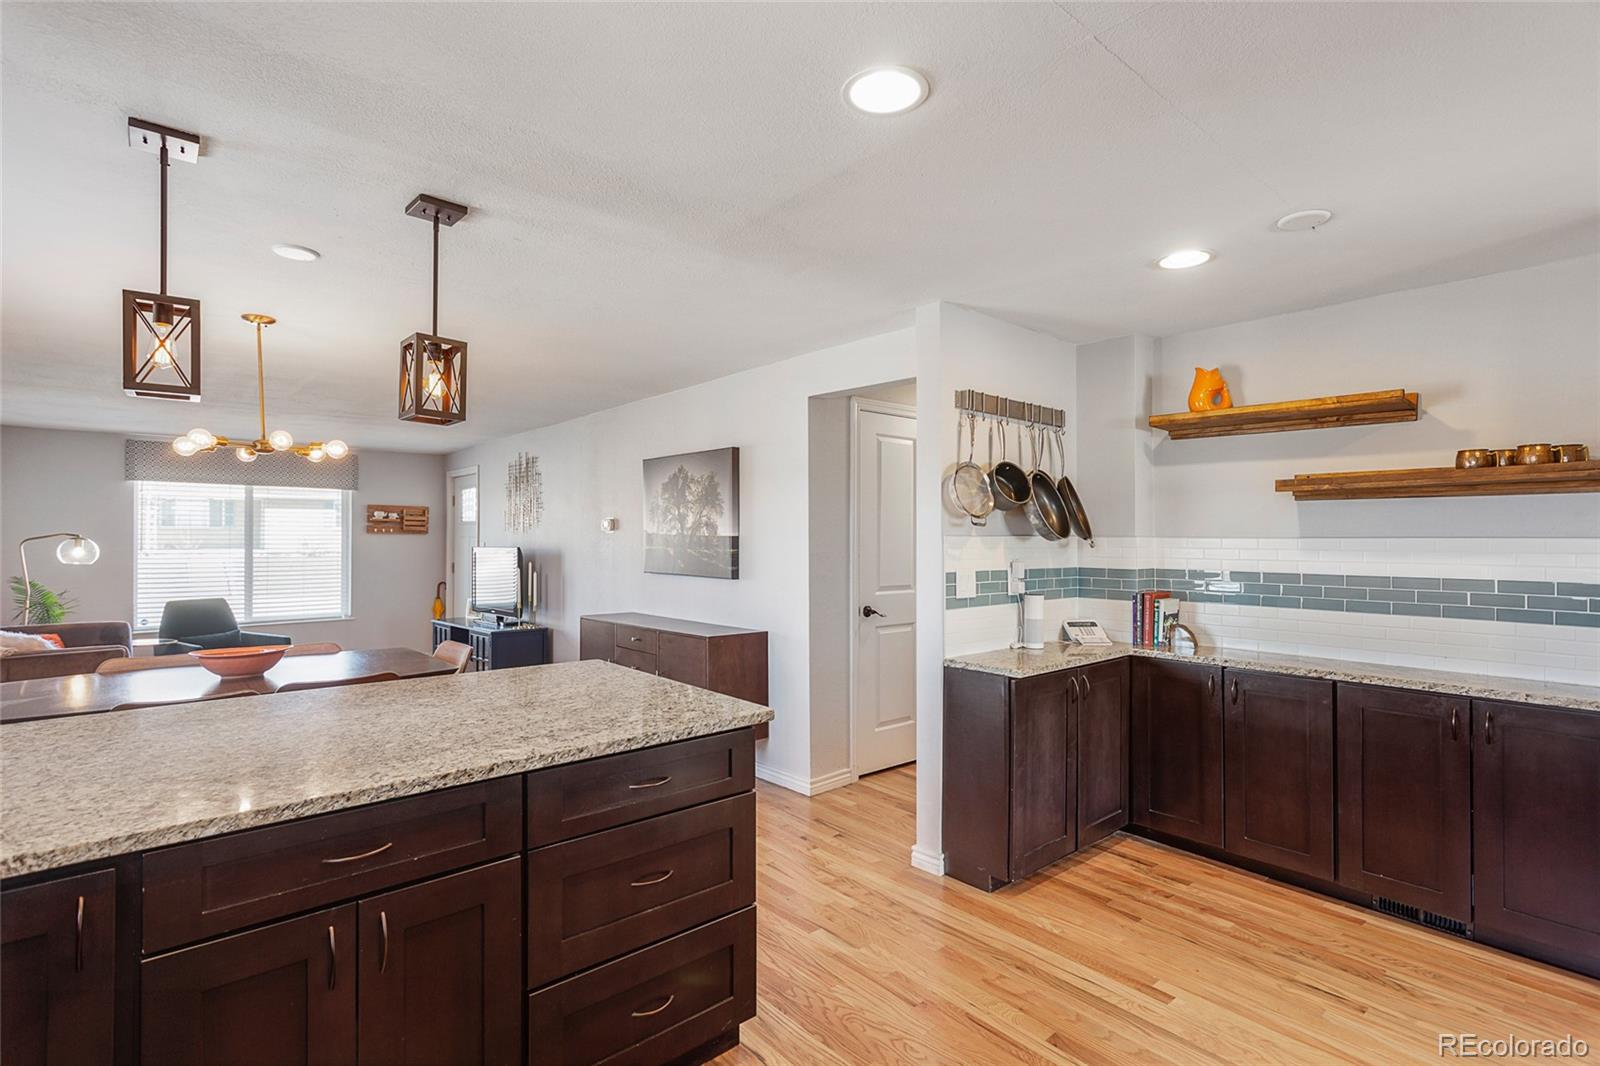 MLS# 4969690 - 10 - 9570 W 54th Place, Arvada, CO 80002